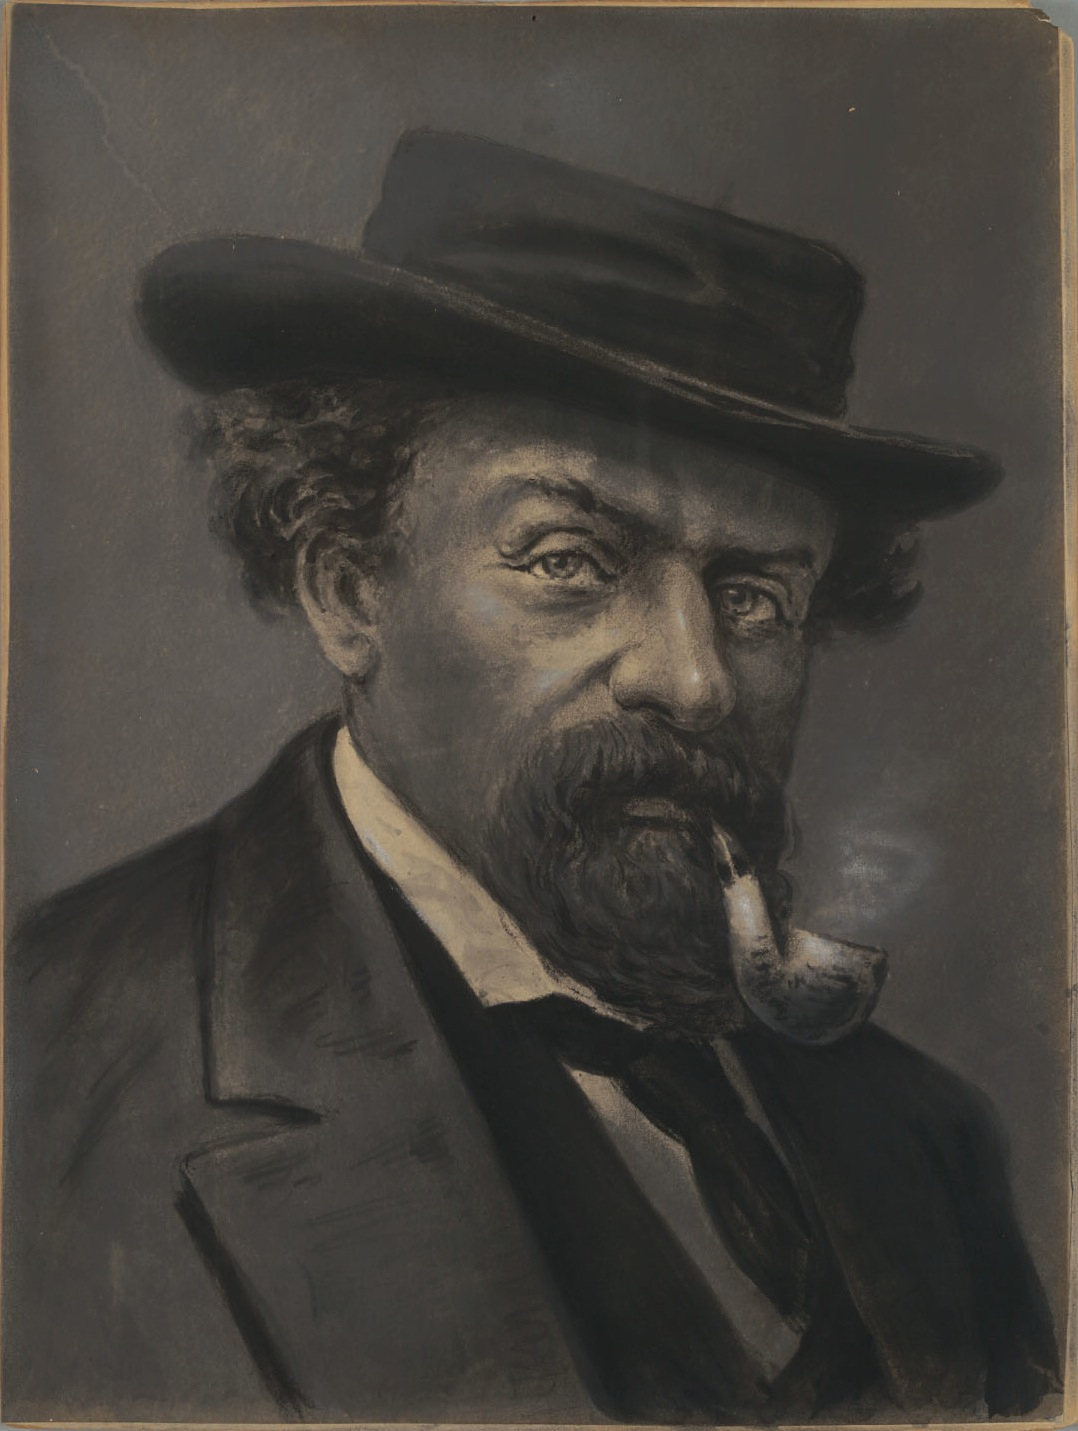 Painting by Virgil Williams (1830-1886), c.1870s. Collection of the Bancroft Library at the University of California Berkeley. Source:  Calisphere .